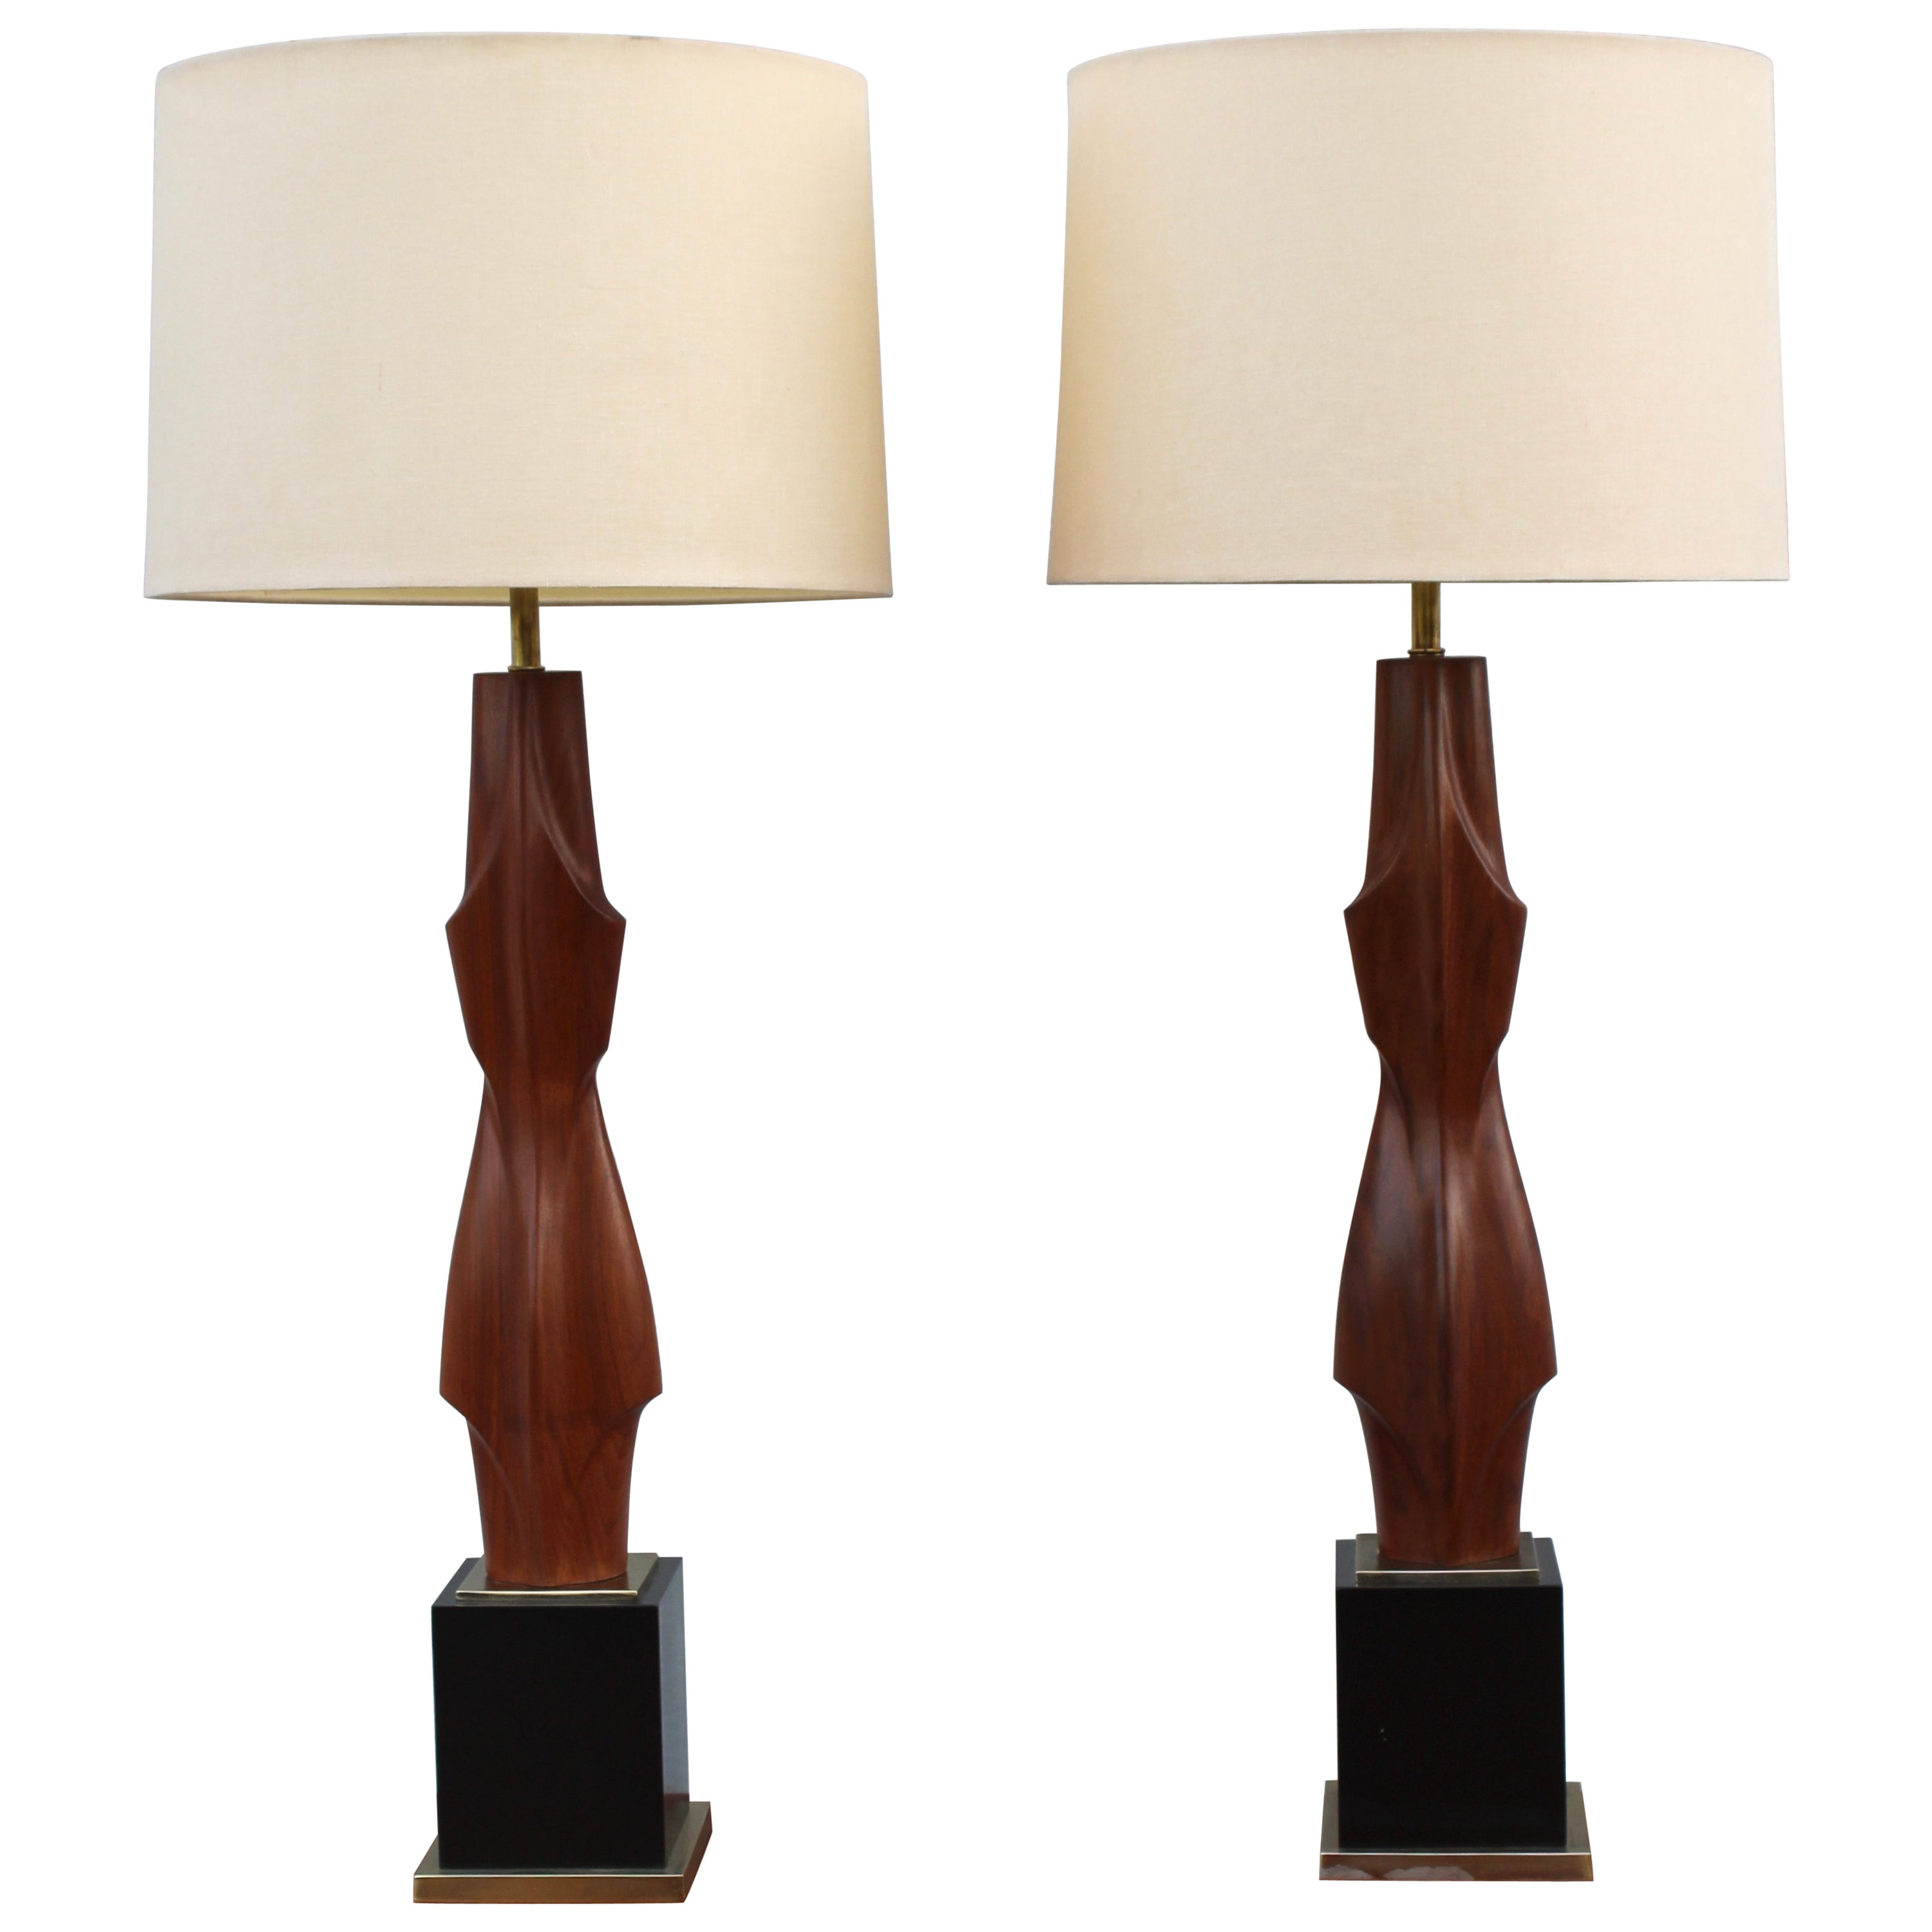 Monumental Sculptural Table Lamps by Laurel